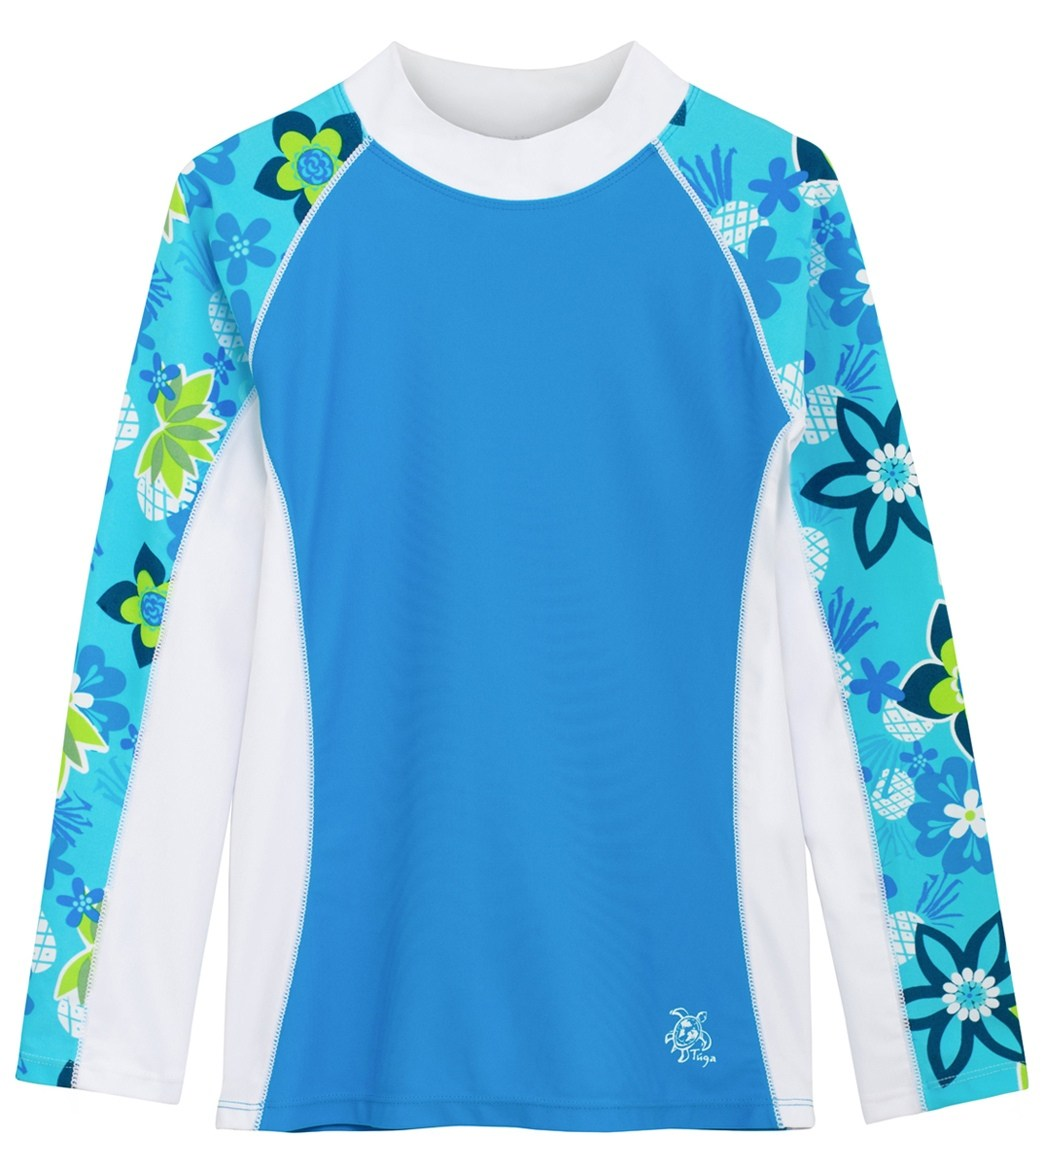 87b5bcb018 Tuga Girls  Shoreline Long Sleeve Rash Guard (6 mo-14 yrs) at SwimOutlet.com